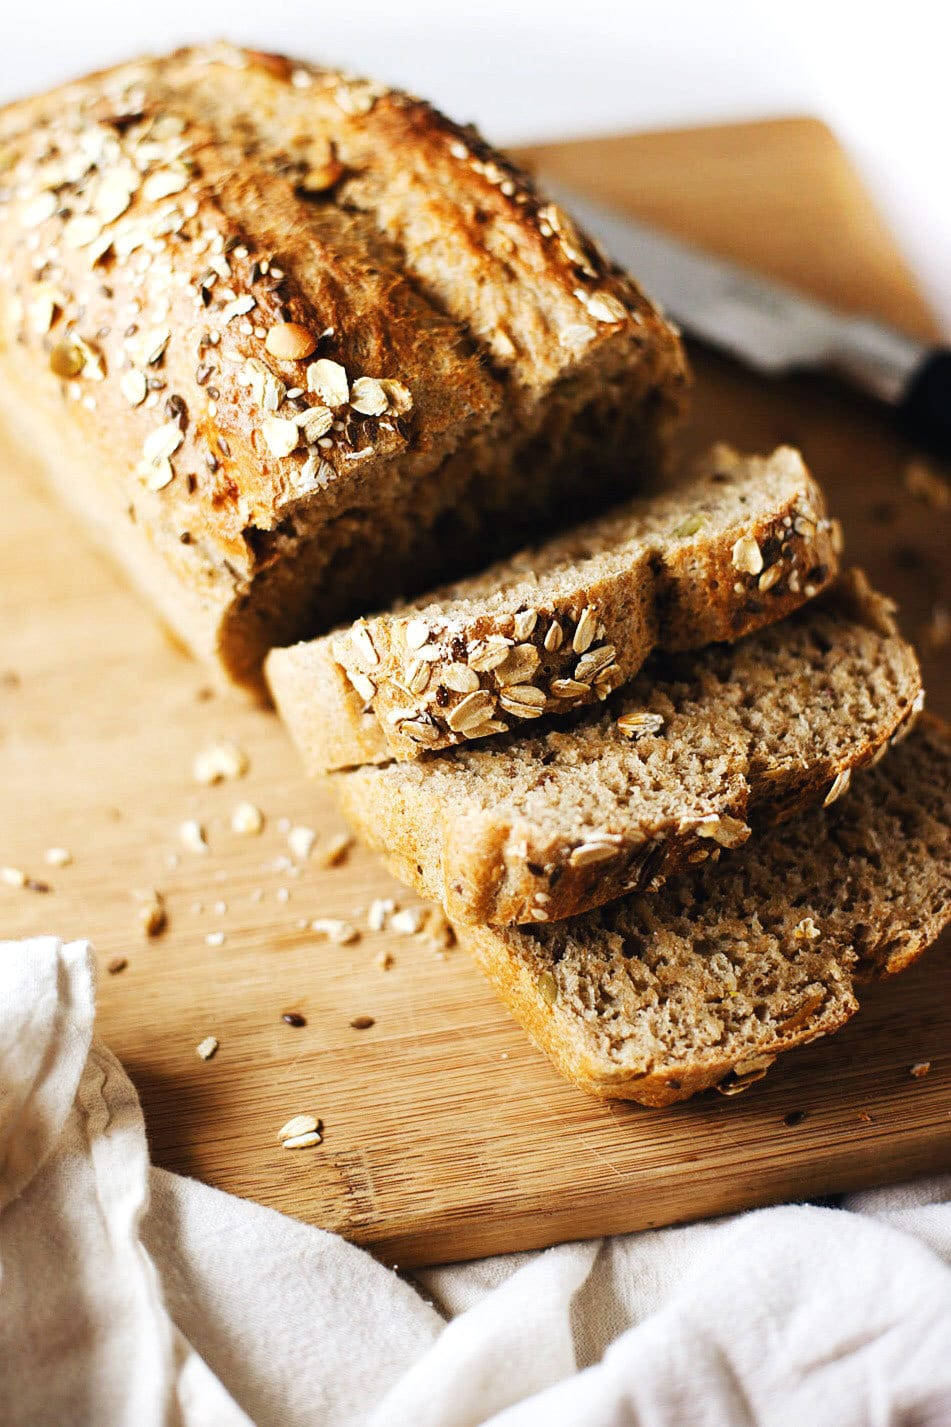 Easy Whole Wheat Grain Bread - Healthy, wholesome and SUPER fast to make. My favorite bread for toast and sandwich bread! I could eat this all day.